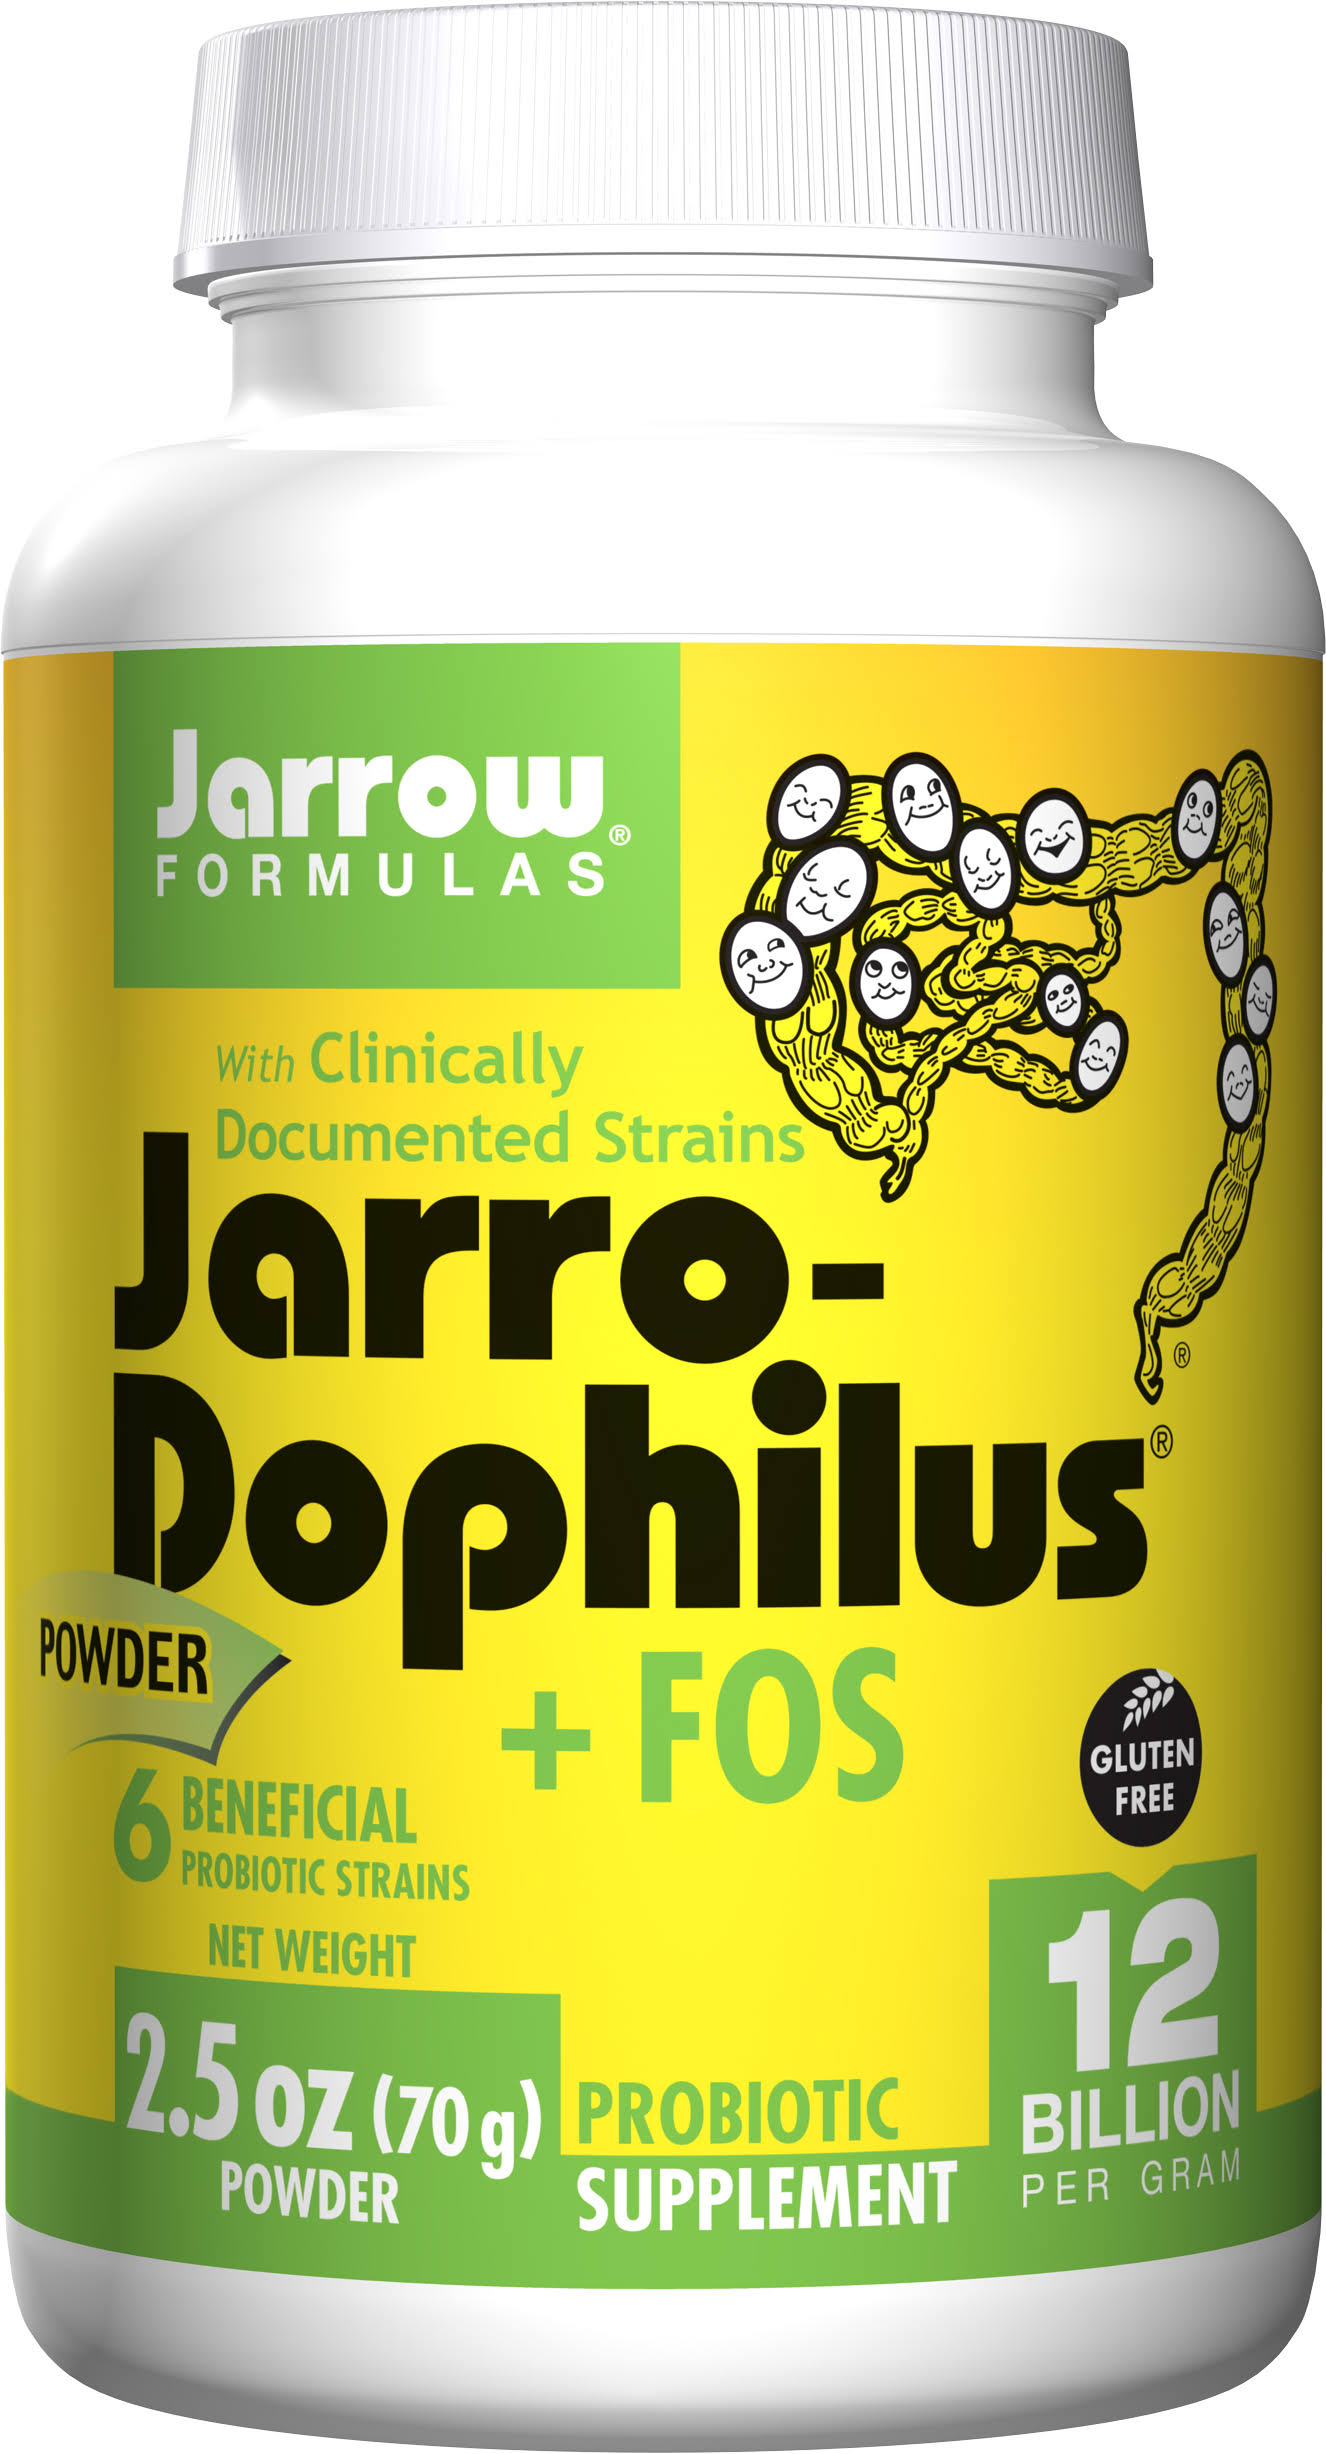 Jarrow Formulas Jarro-Dophilus Powder Probiotic Supplement - 70g